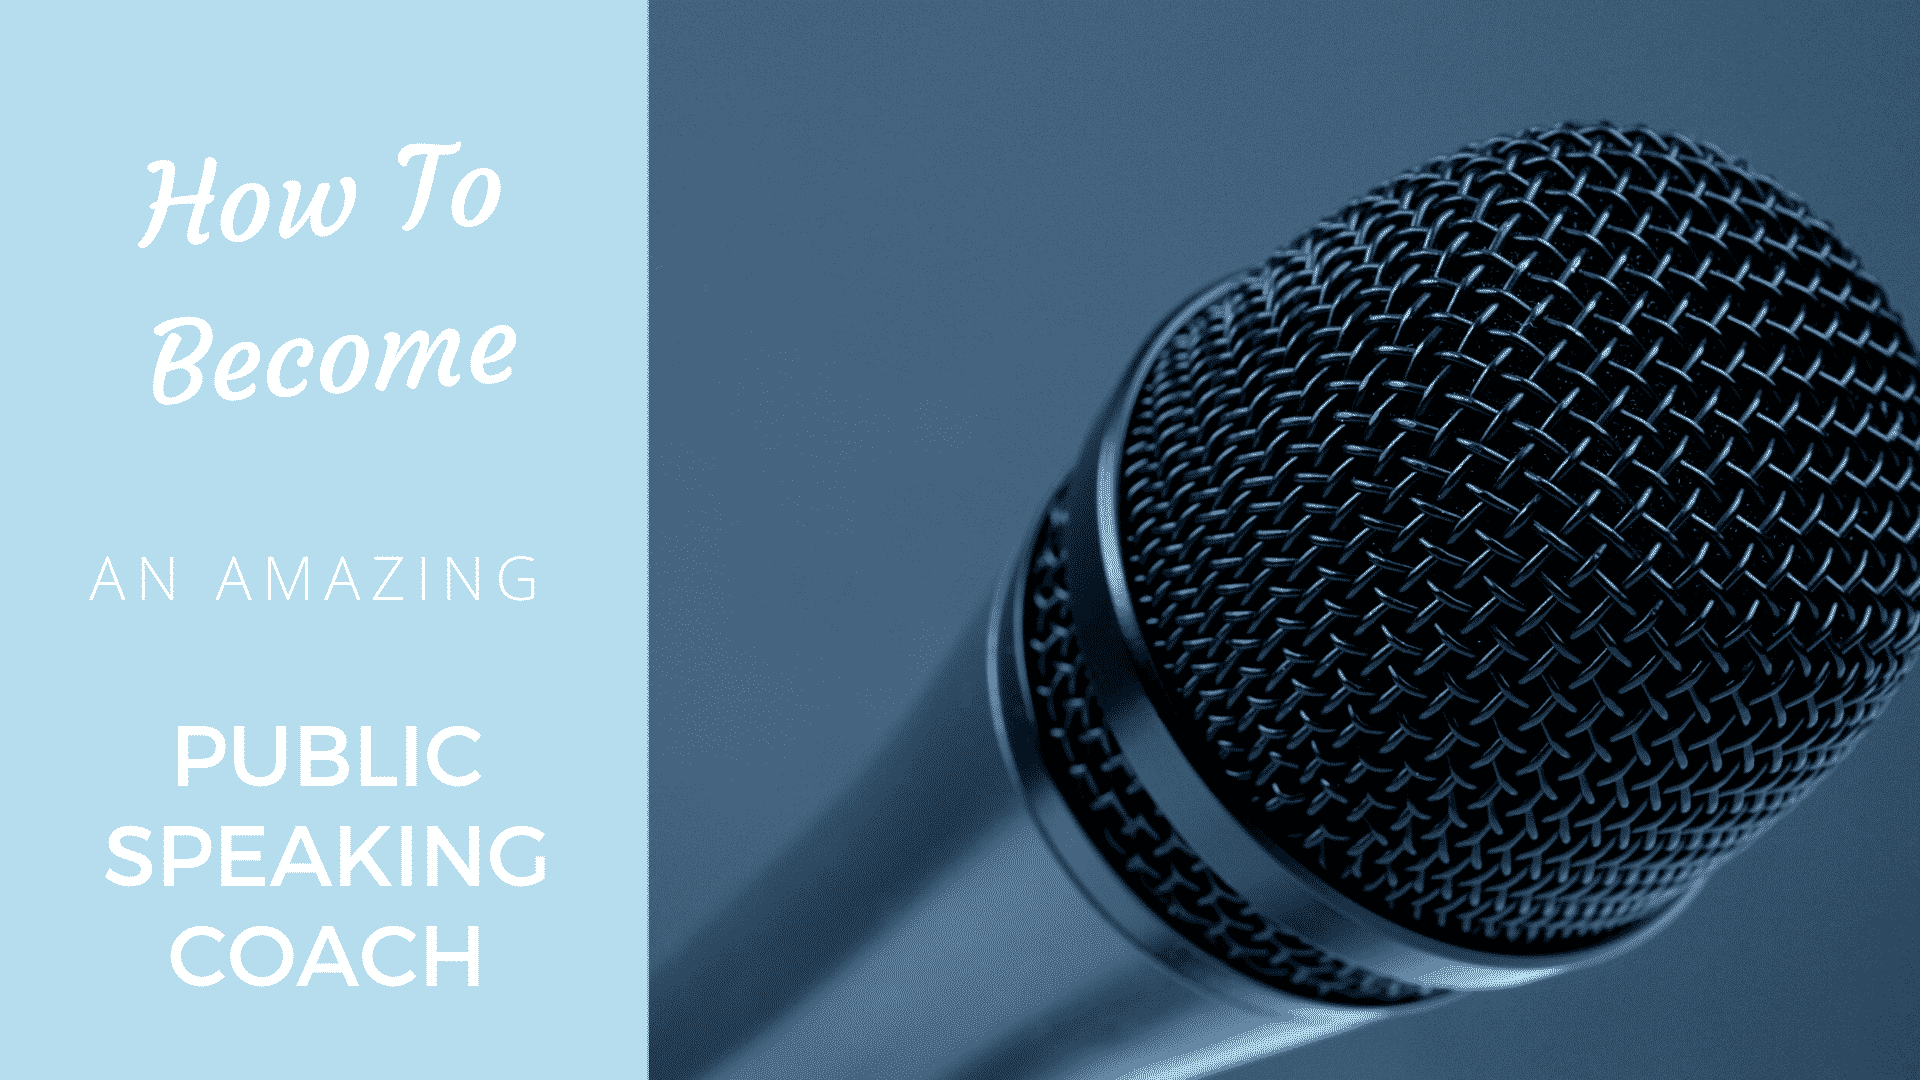 Become an Amazing Public Speaking Coach